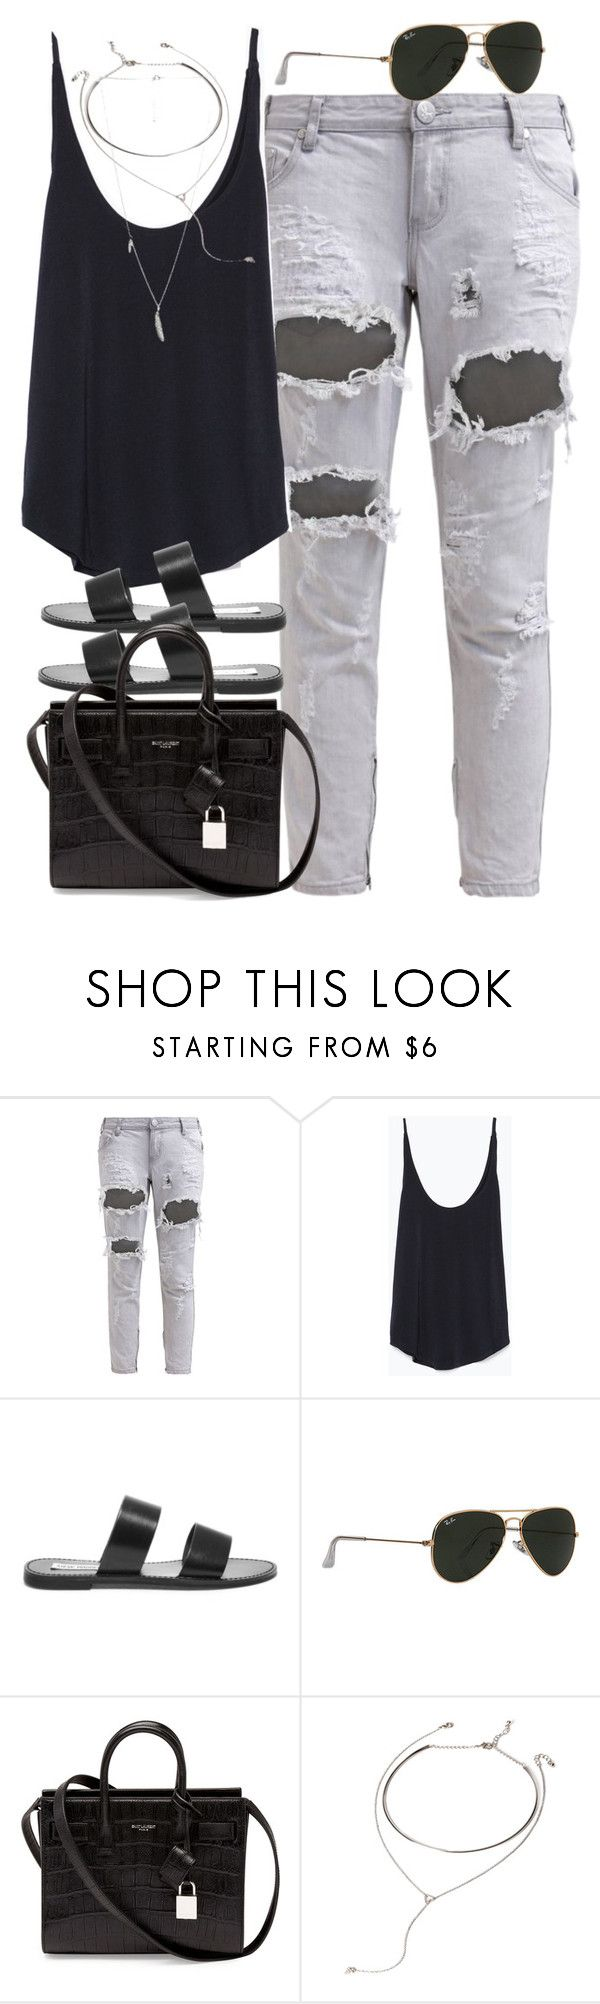 """Untitled #626"" by theradmoons ❤ liked on Polyvore featuring OneTeaspoon, Zara, Steve Madden, Ray-Ban, Yves Saint Laurent and Forever 21"